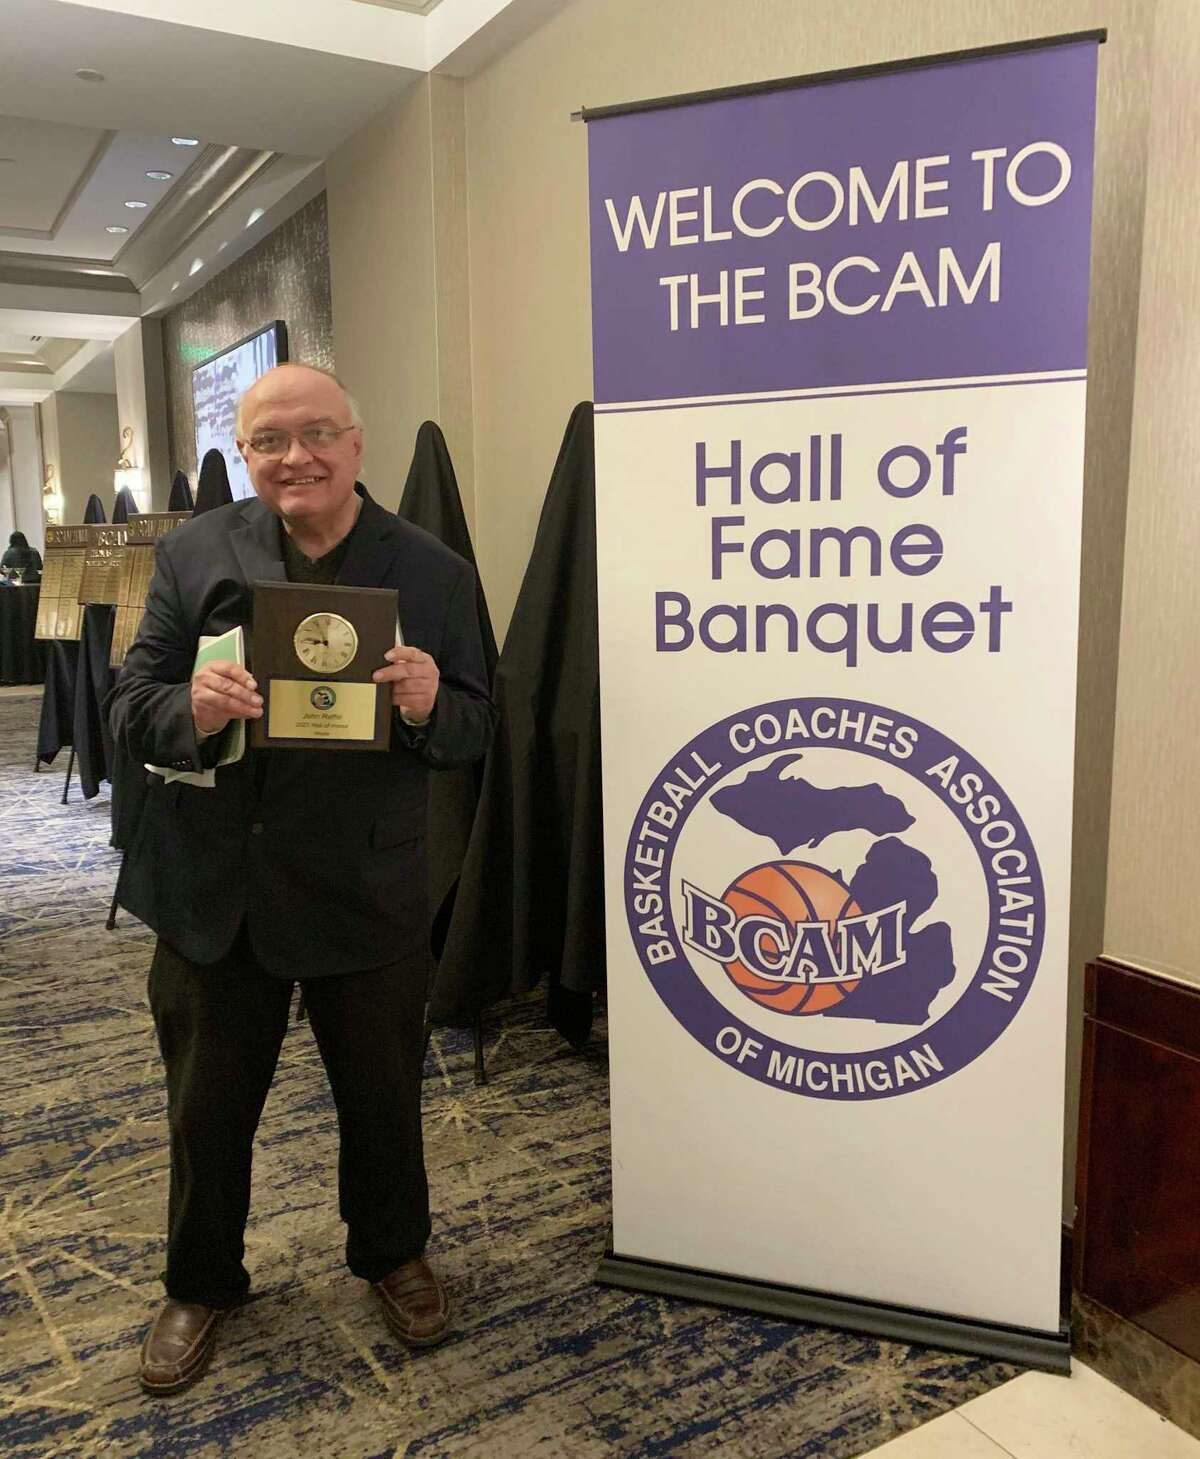 Pioneer sports director John Raffel displays a commemorative plaque he received from theBasketball Coaches Association of Michigan. Raffel was inducted into the BCAM's Hall of Honor during a special banquet Oct. 2 for his dedication of sports coverage throughout the state of Michigan over the years. (Courtesy photo)